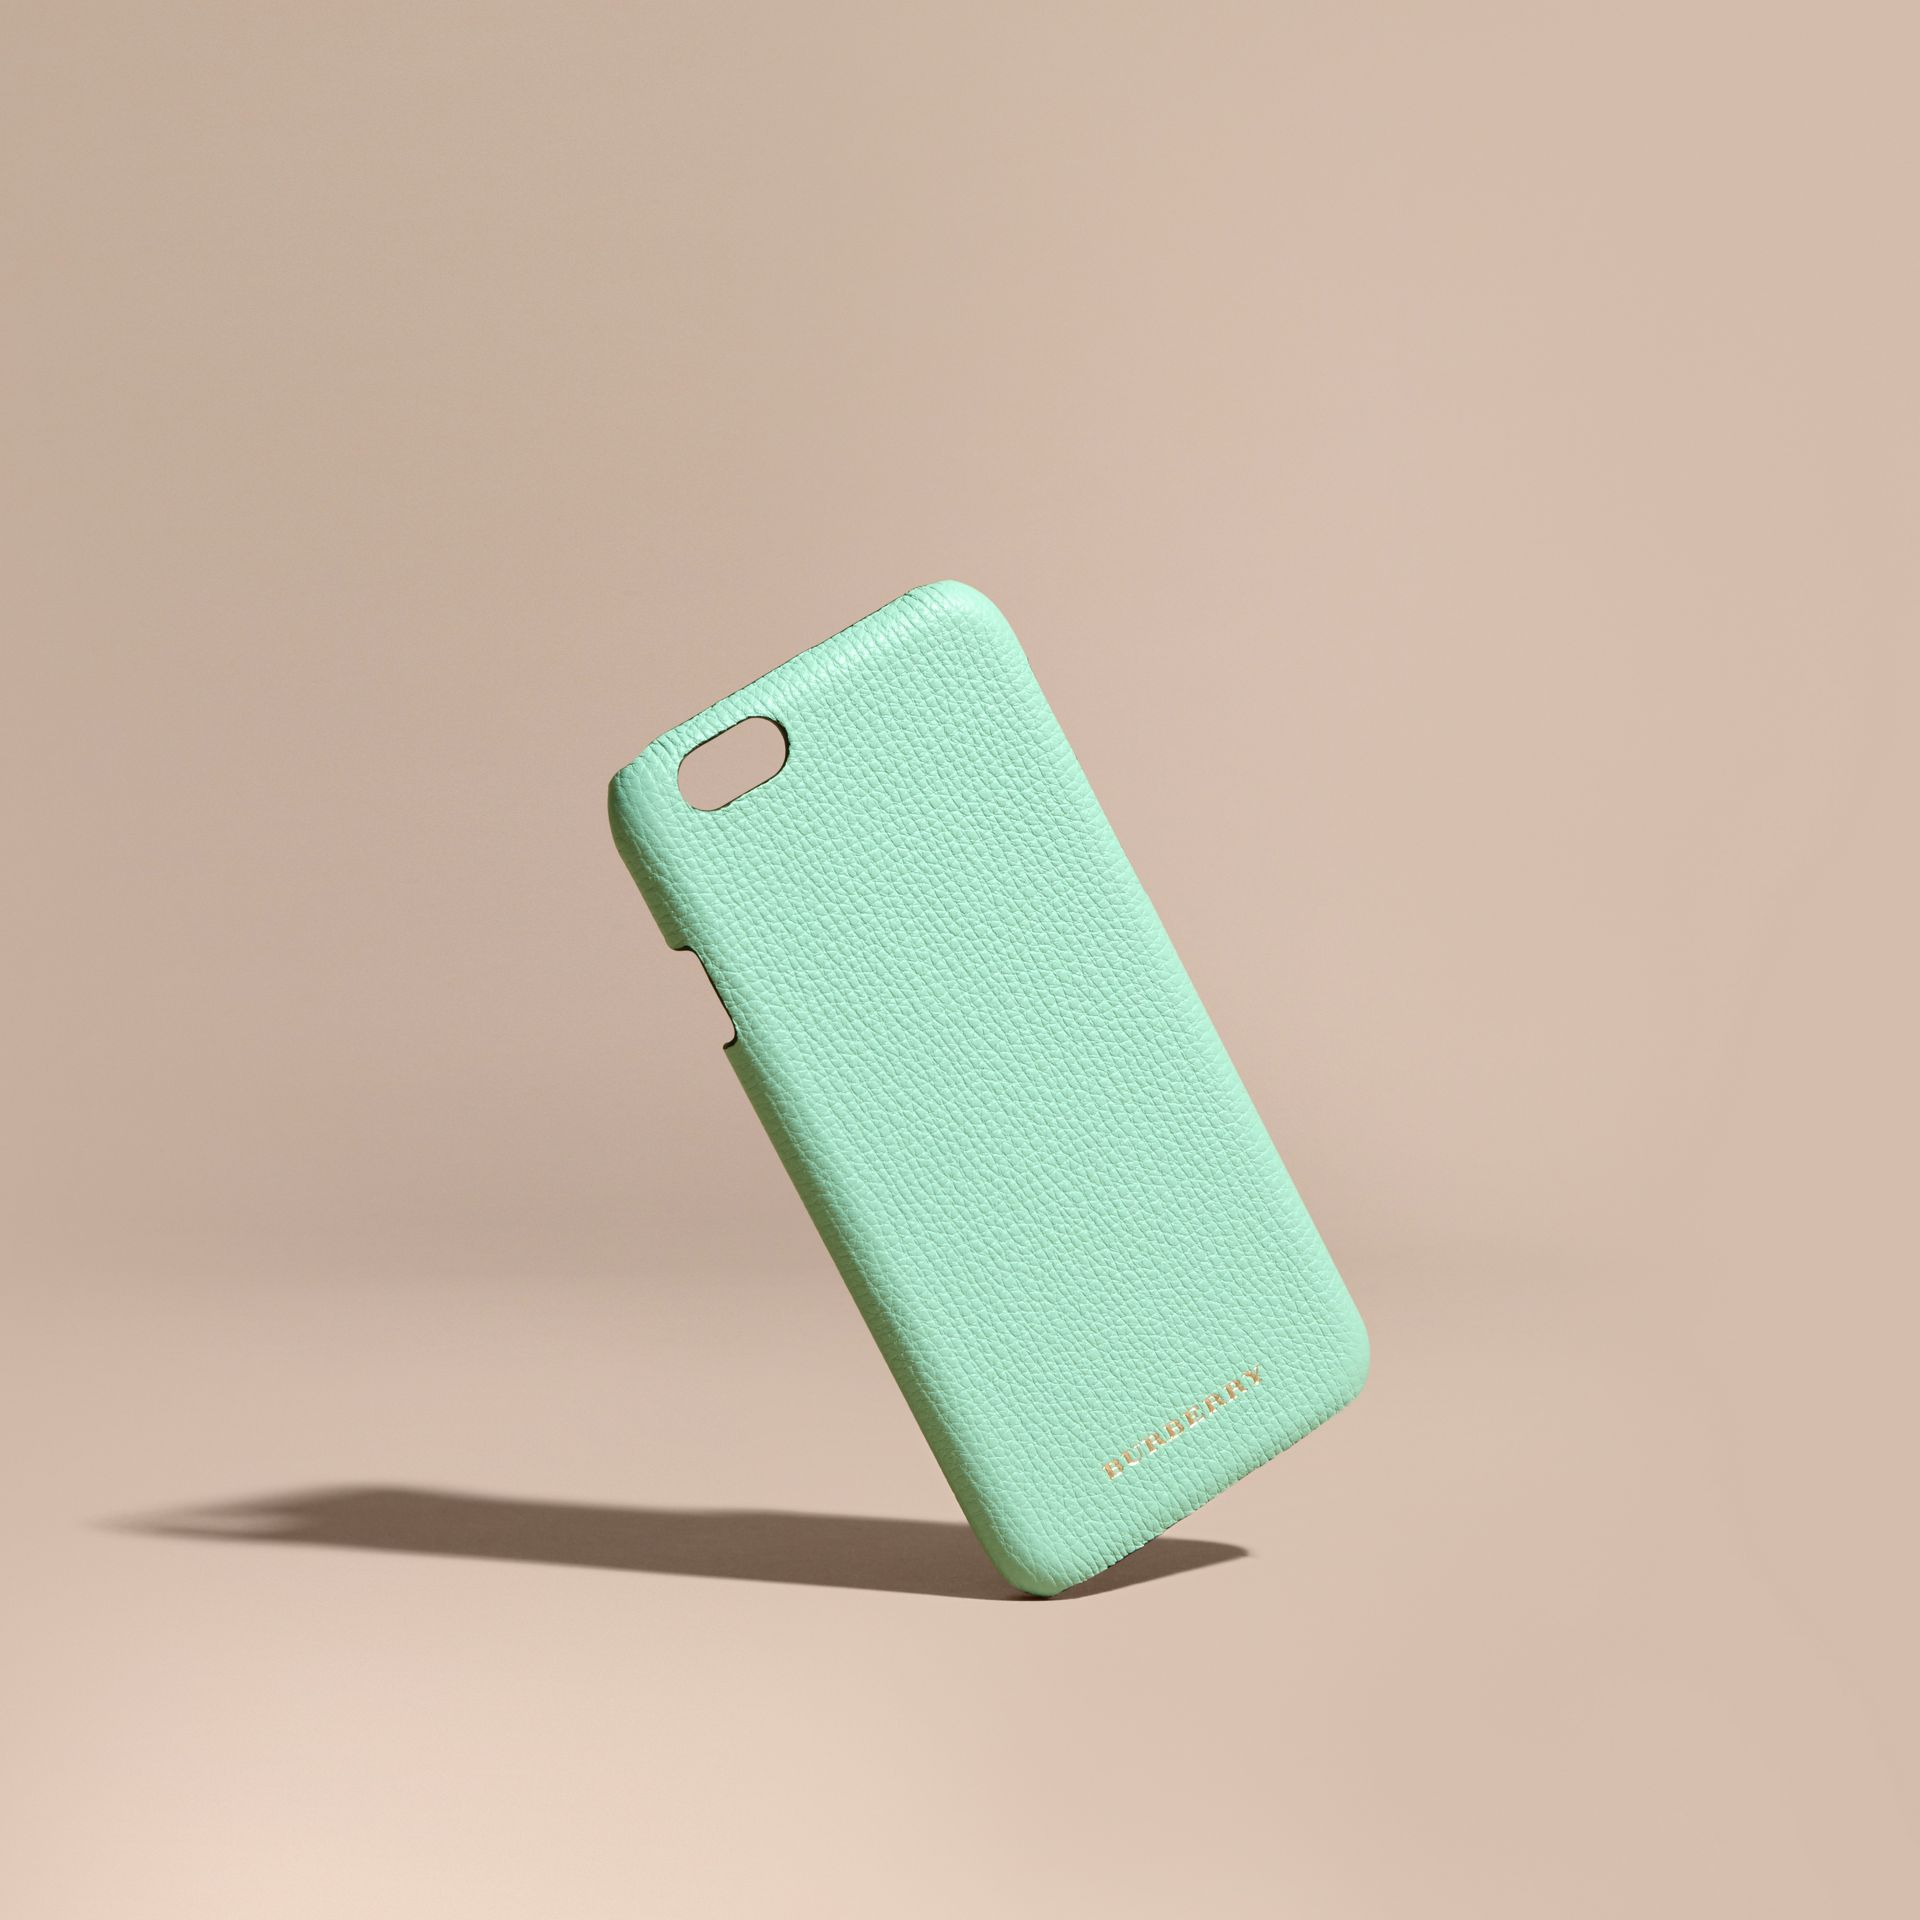 Grainy Leather iPhone 6 Case in Light Mint - Women | Burberry - gallery image 1